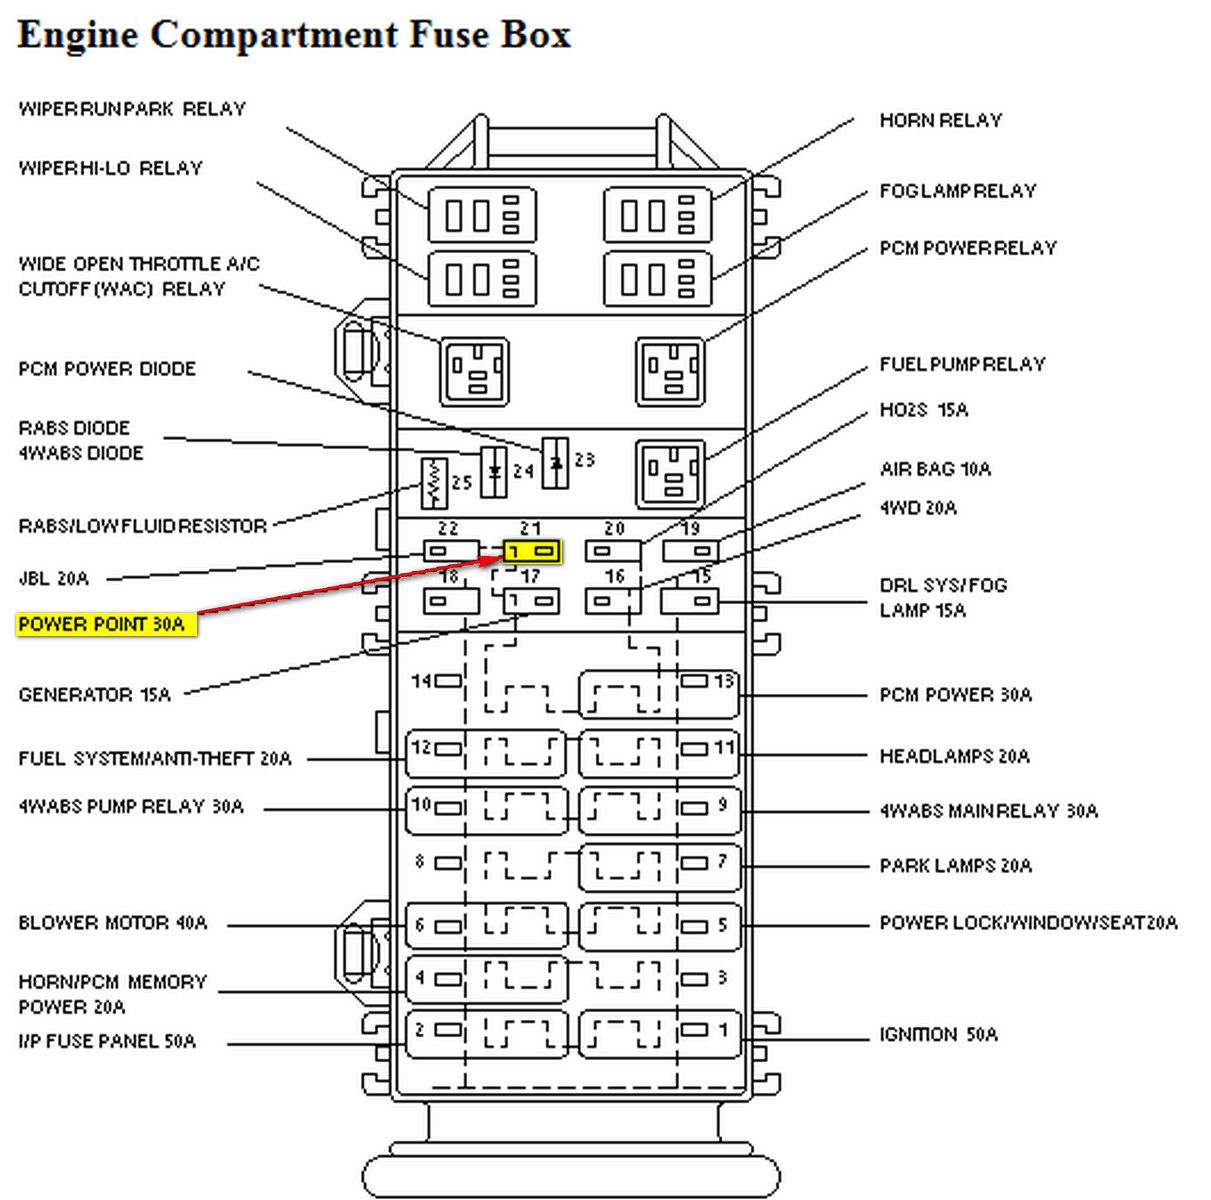 Fuse Panel Diagram Circuit Schema Chevy Equinox Box Layout 1997 Ford Ranger Truck Part Diagrams 2005